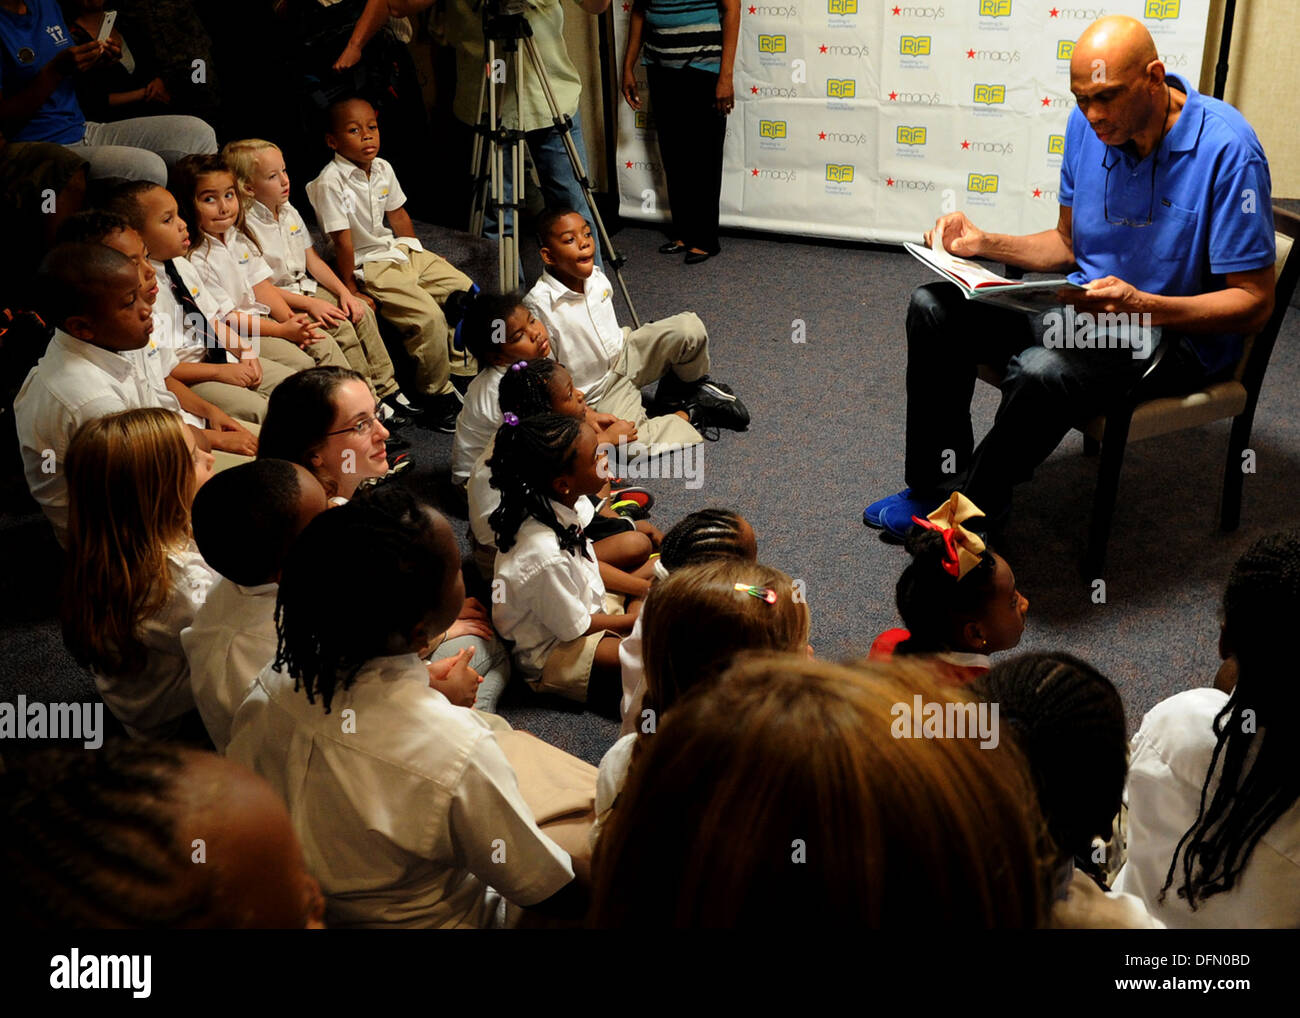 Kareem Abdul-Jabbar reads to a group of children during a Reading is Fundamental event at the Youth Center on Joint Base Andrews, Md., Oct. 1, 2013. Jabbar attended the event hosted by Joint Base Andrews and the RIF organization to help encourage and moti - Stock Image